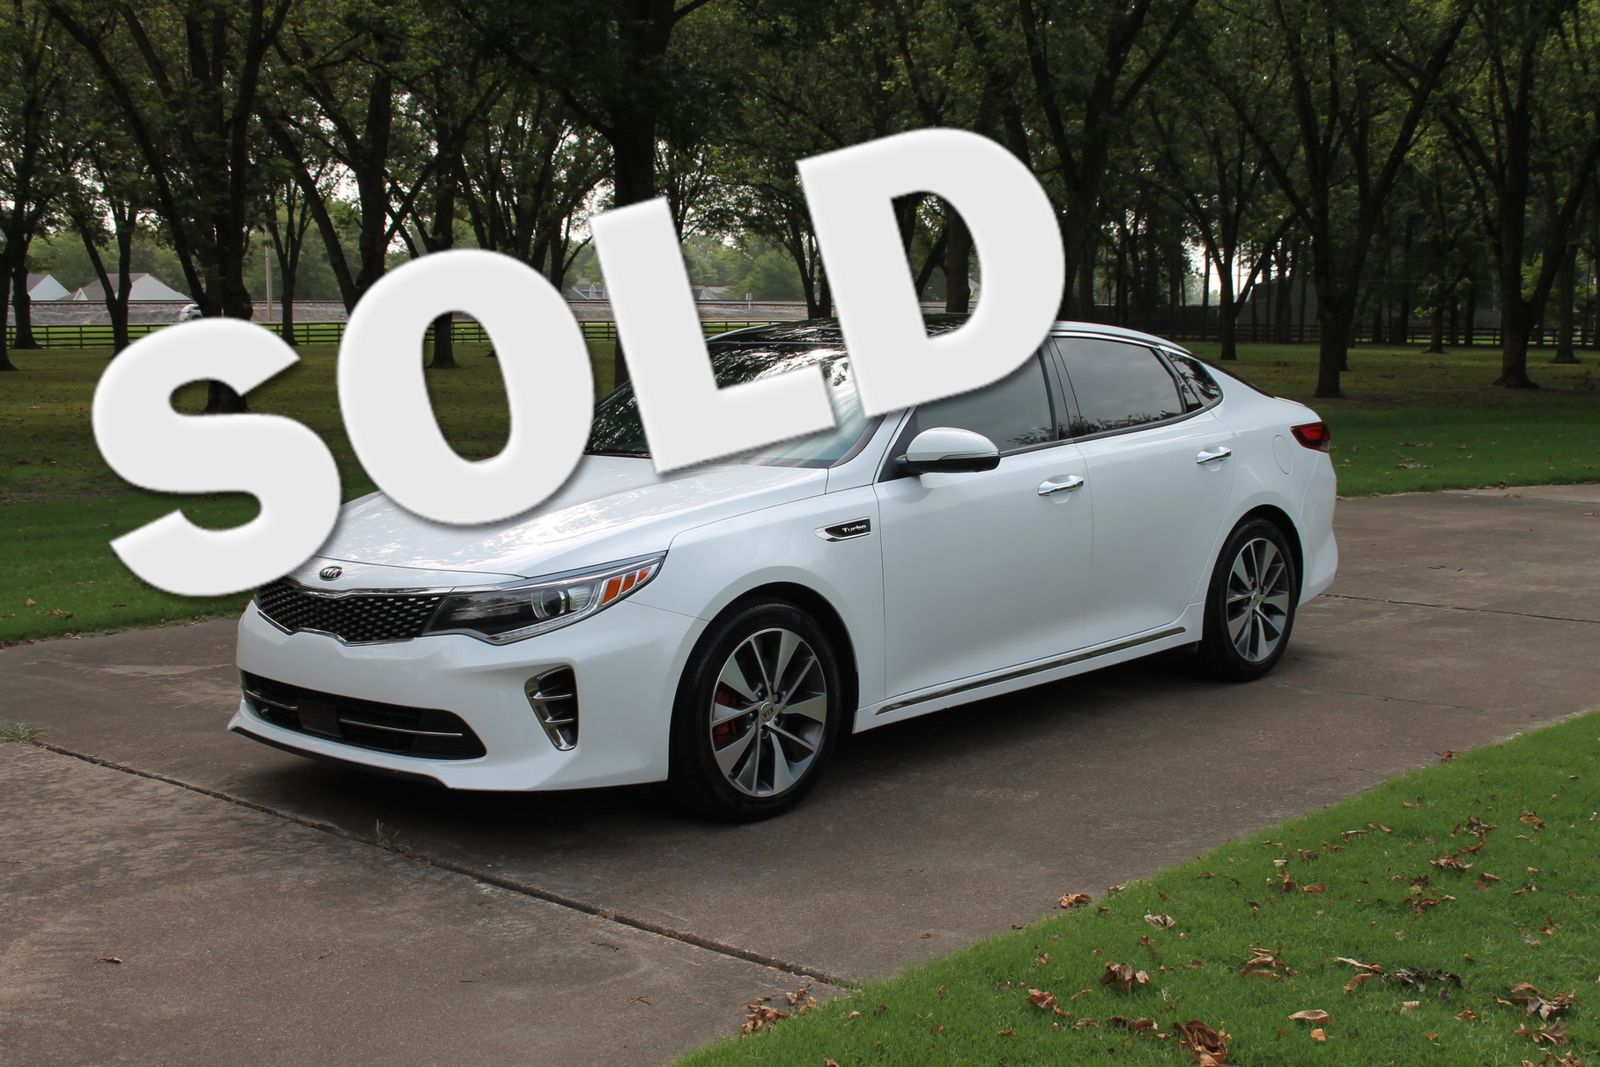 2016 Kia Optima SXL Turbo Price   Used Cars Memphis   Hallum Motors  Citystatezip In Marion ...